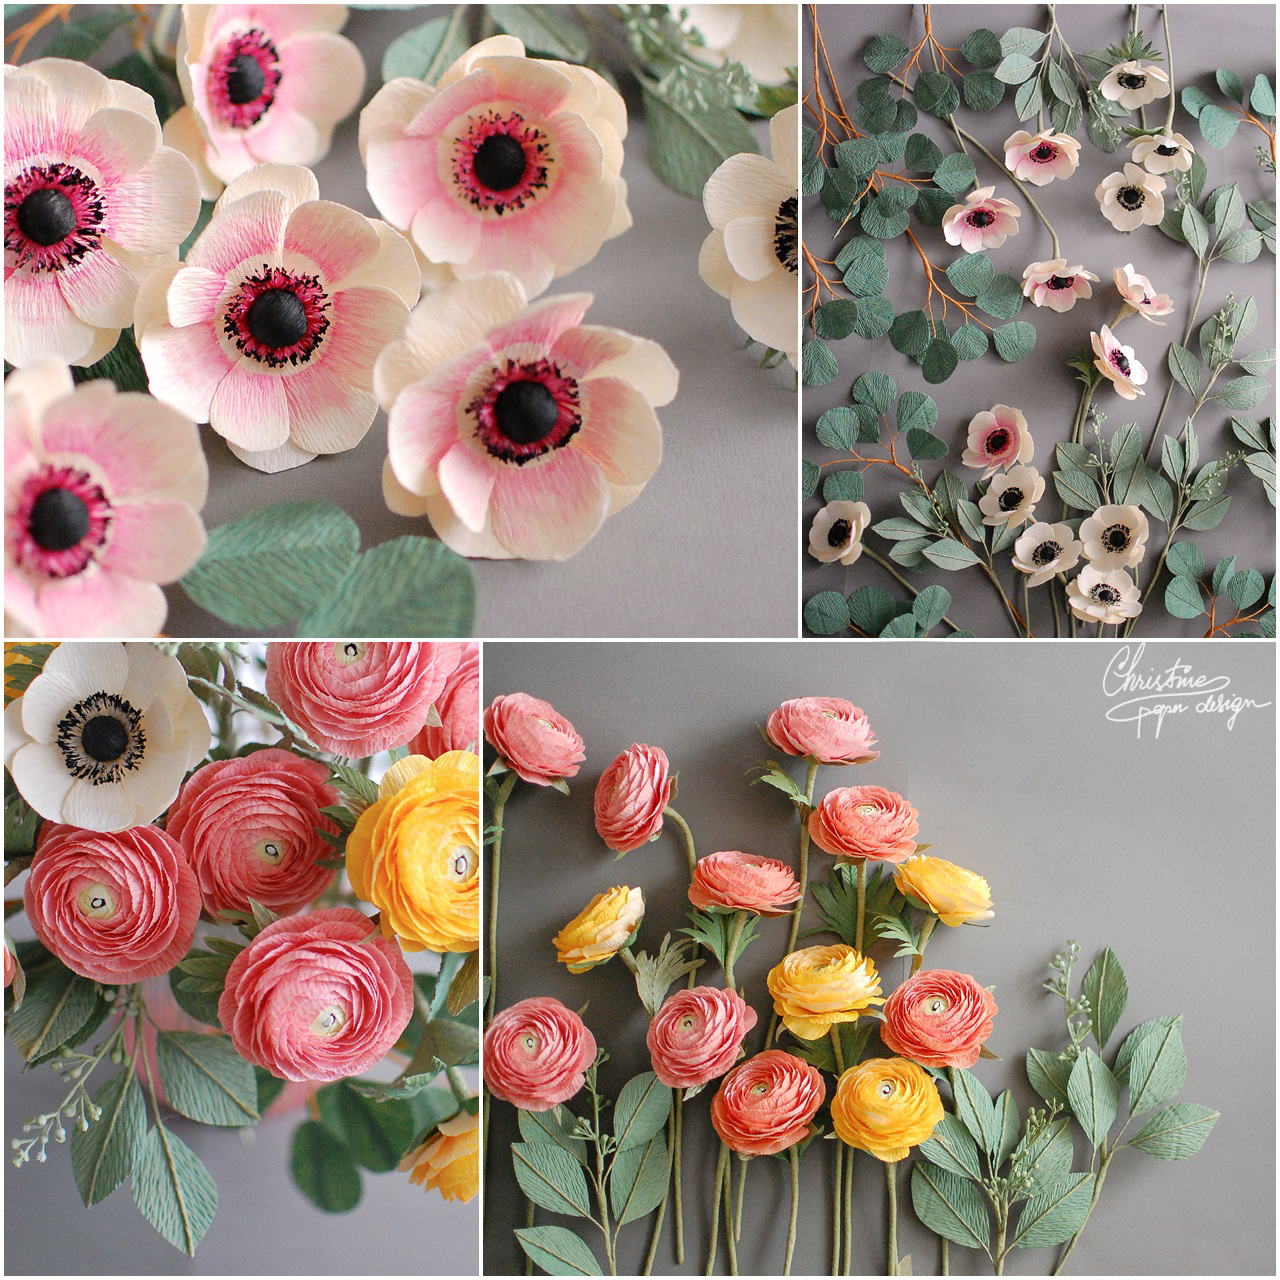 Christine paper design - paper ranunculus and anemone